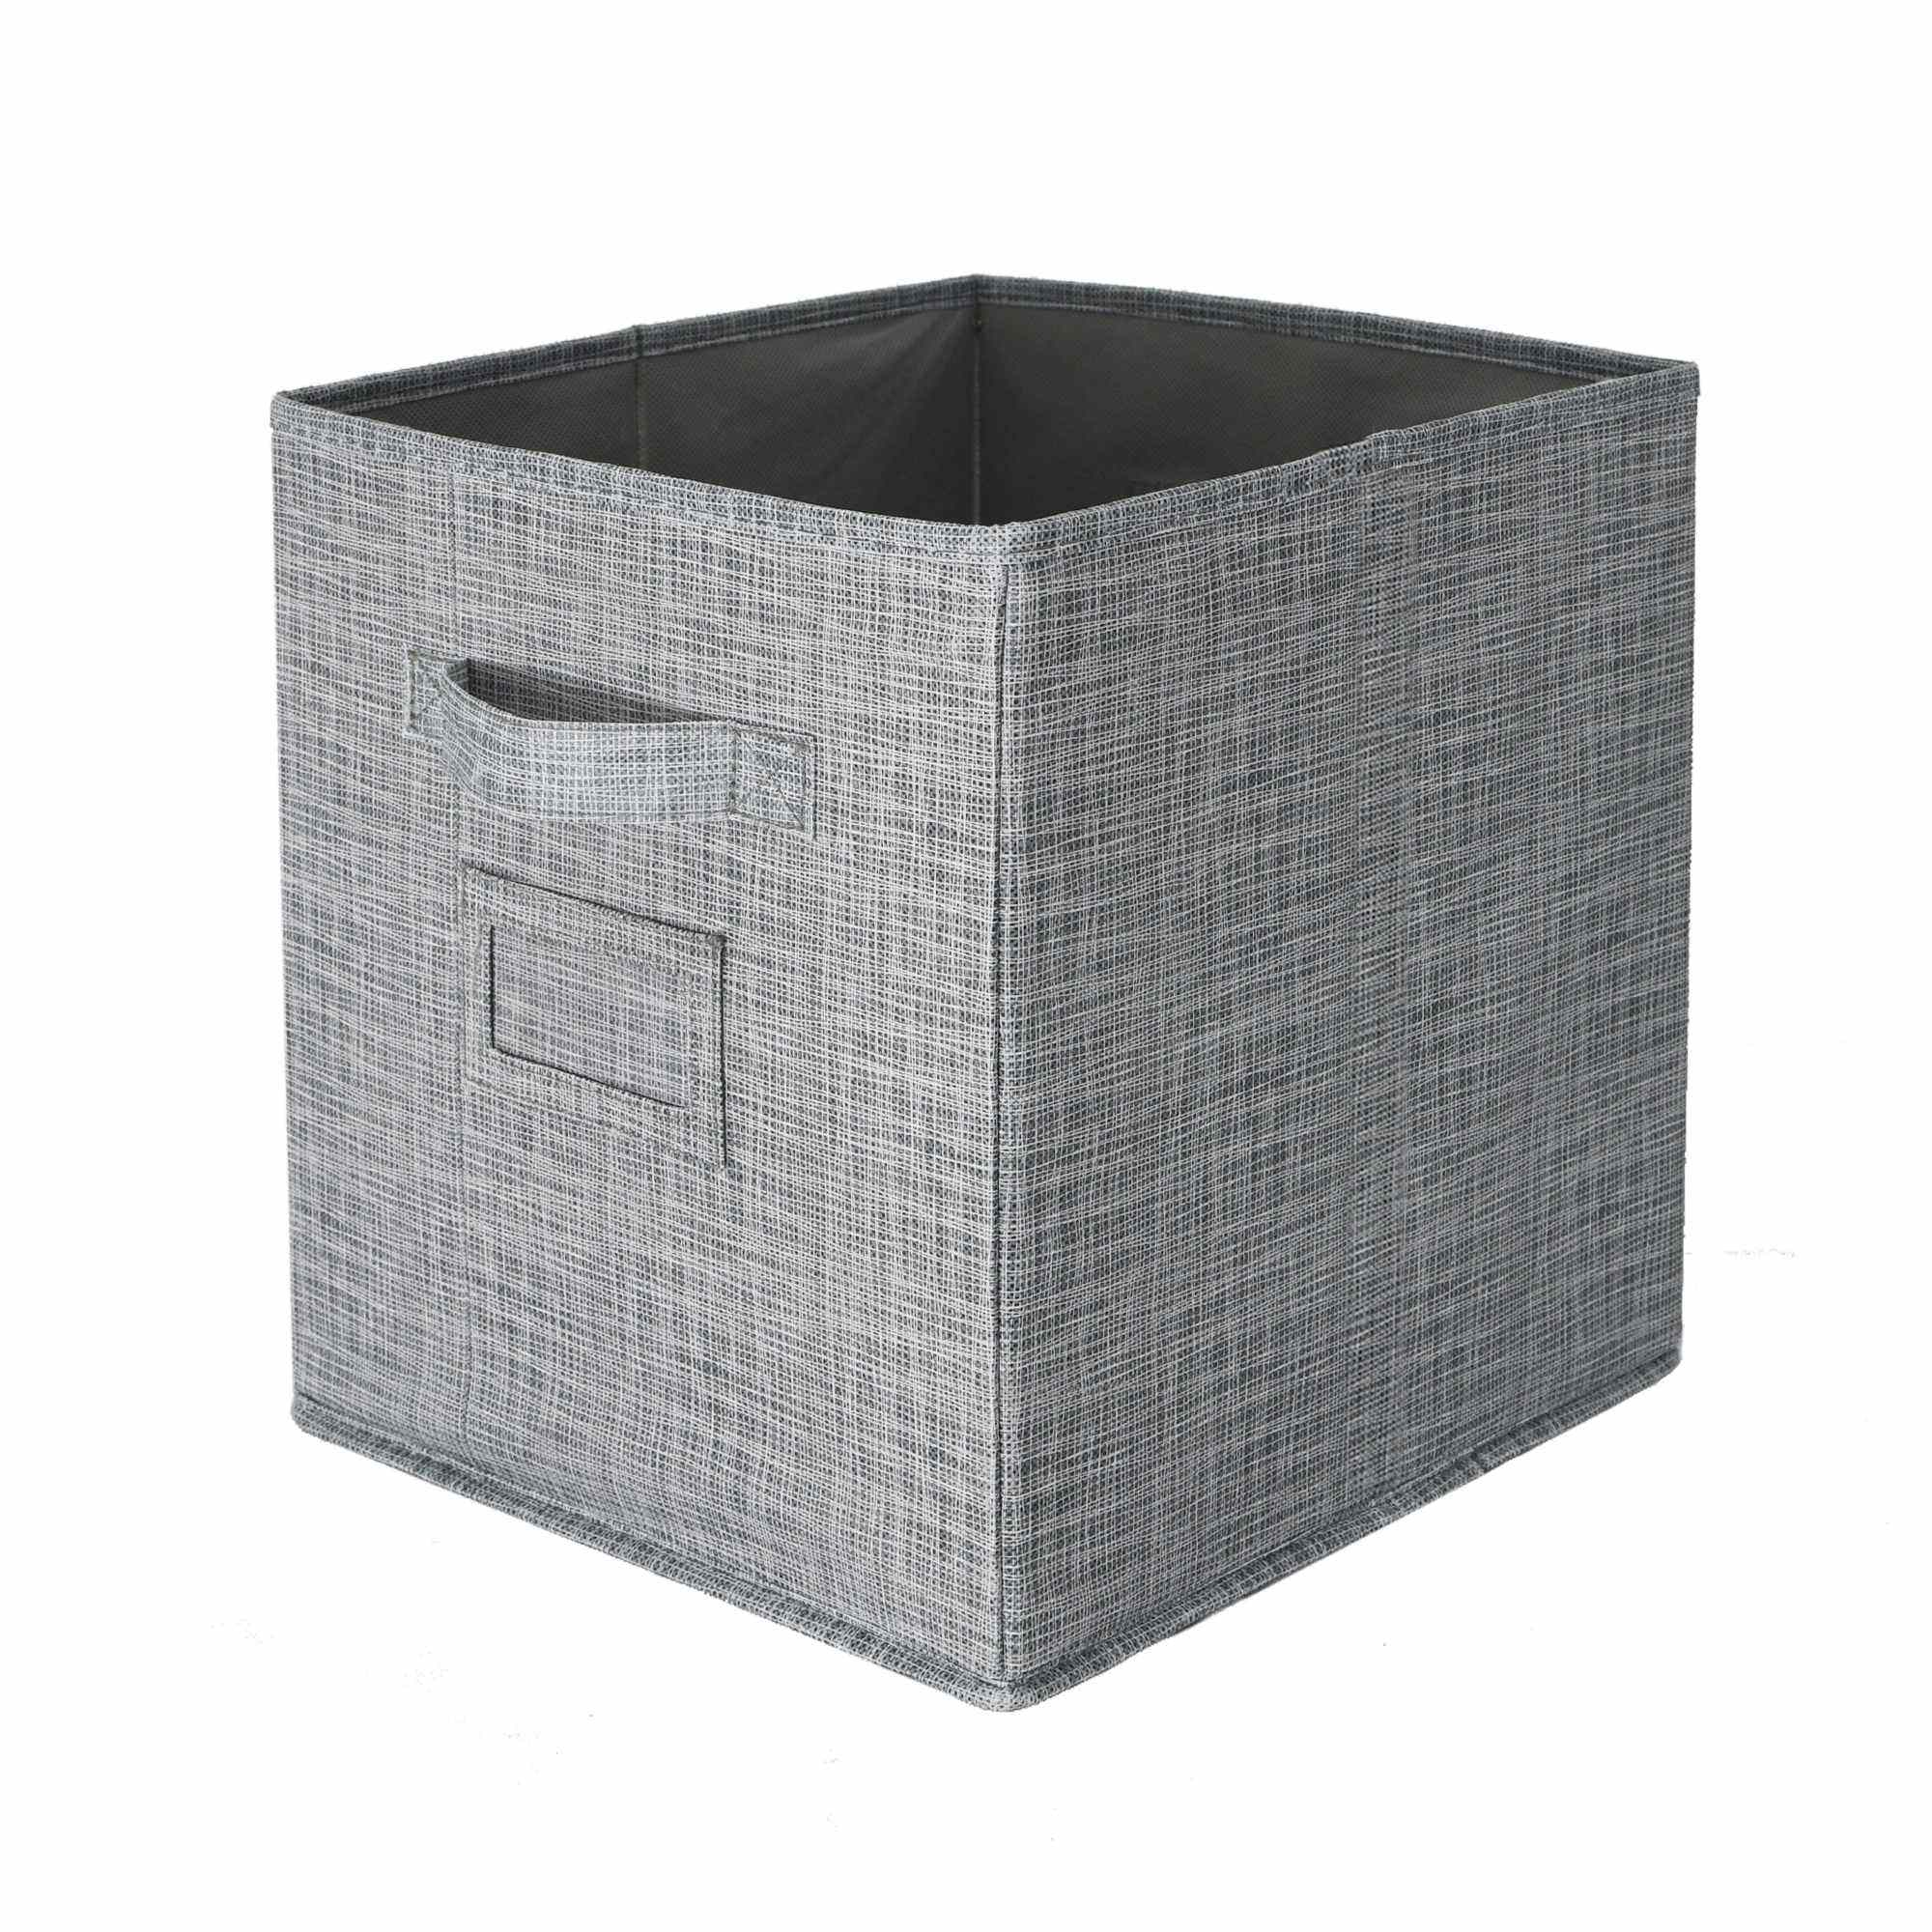 Fashion small Pack of 3 Foldable Natural Soft Storage Cubes Non woven Convenient DIY Storage Box